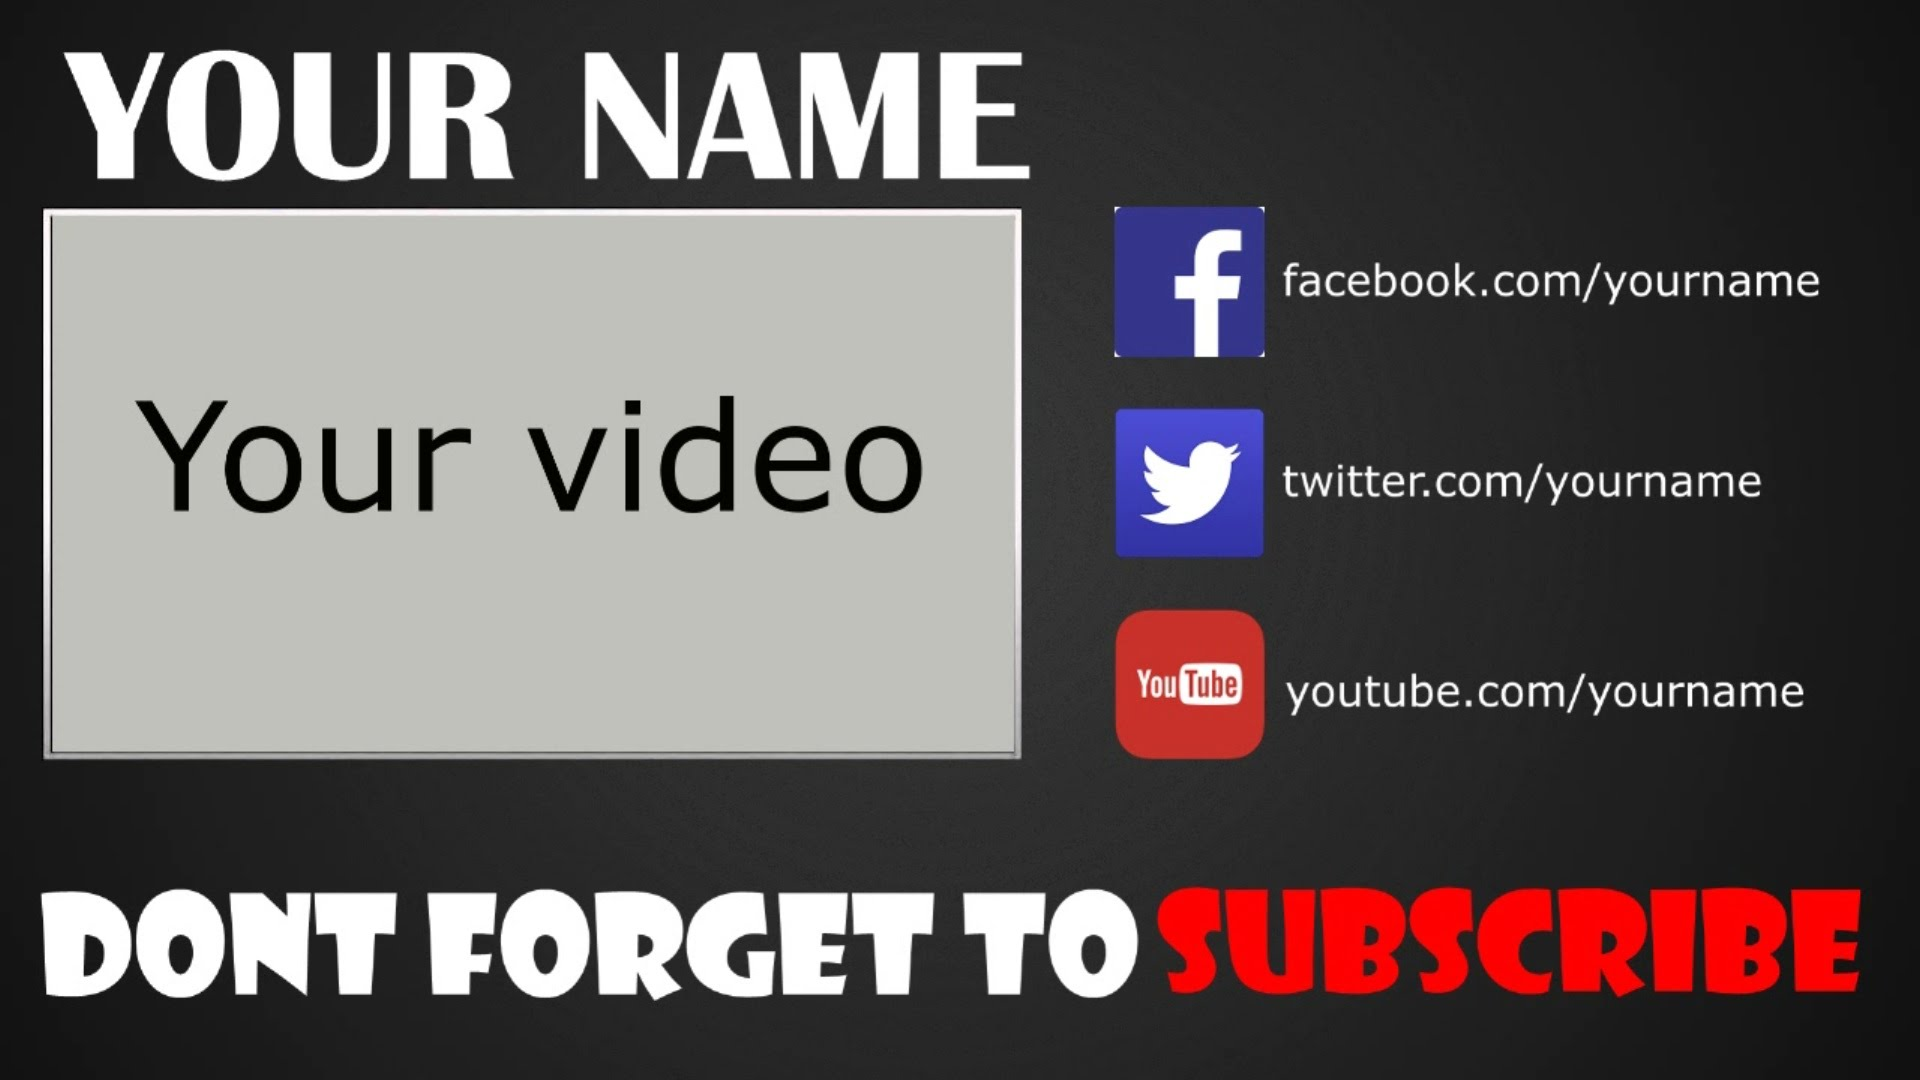 28 Images of Outro Template Blank | infovia.net